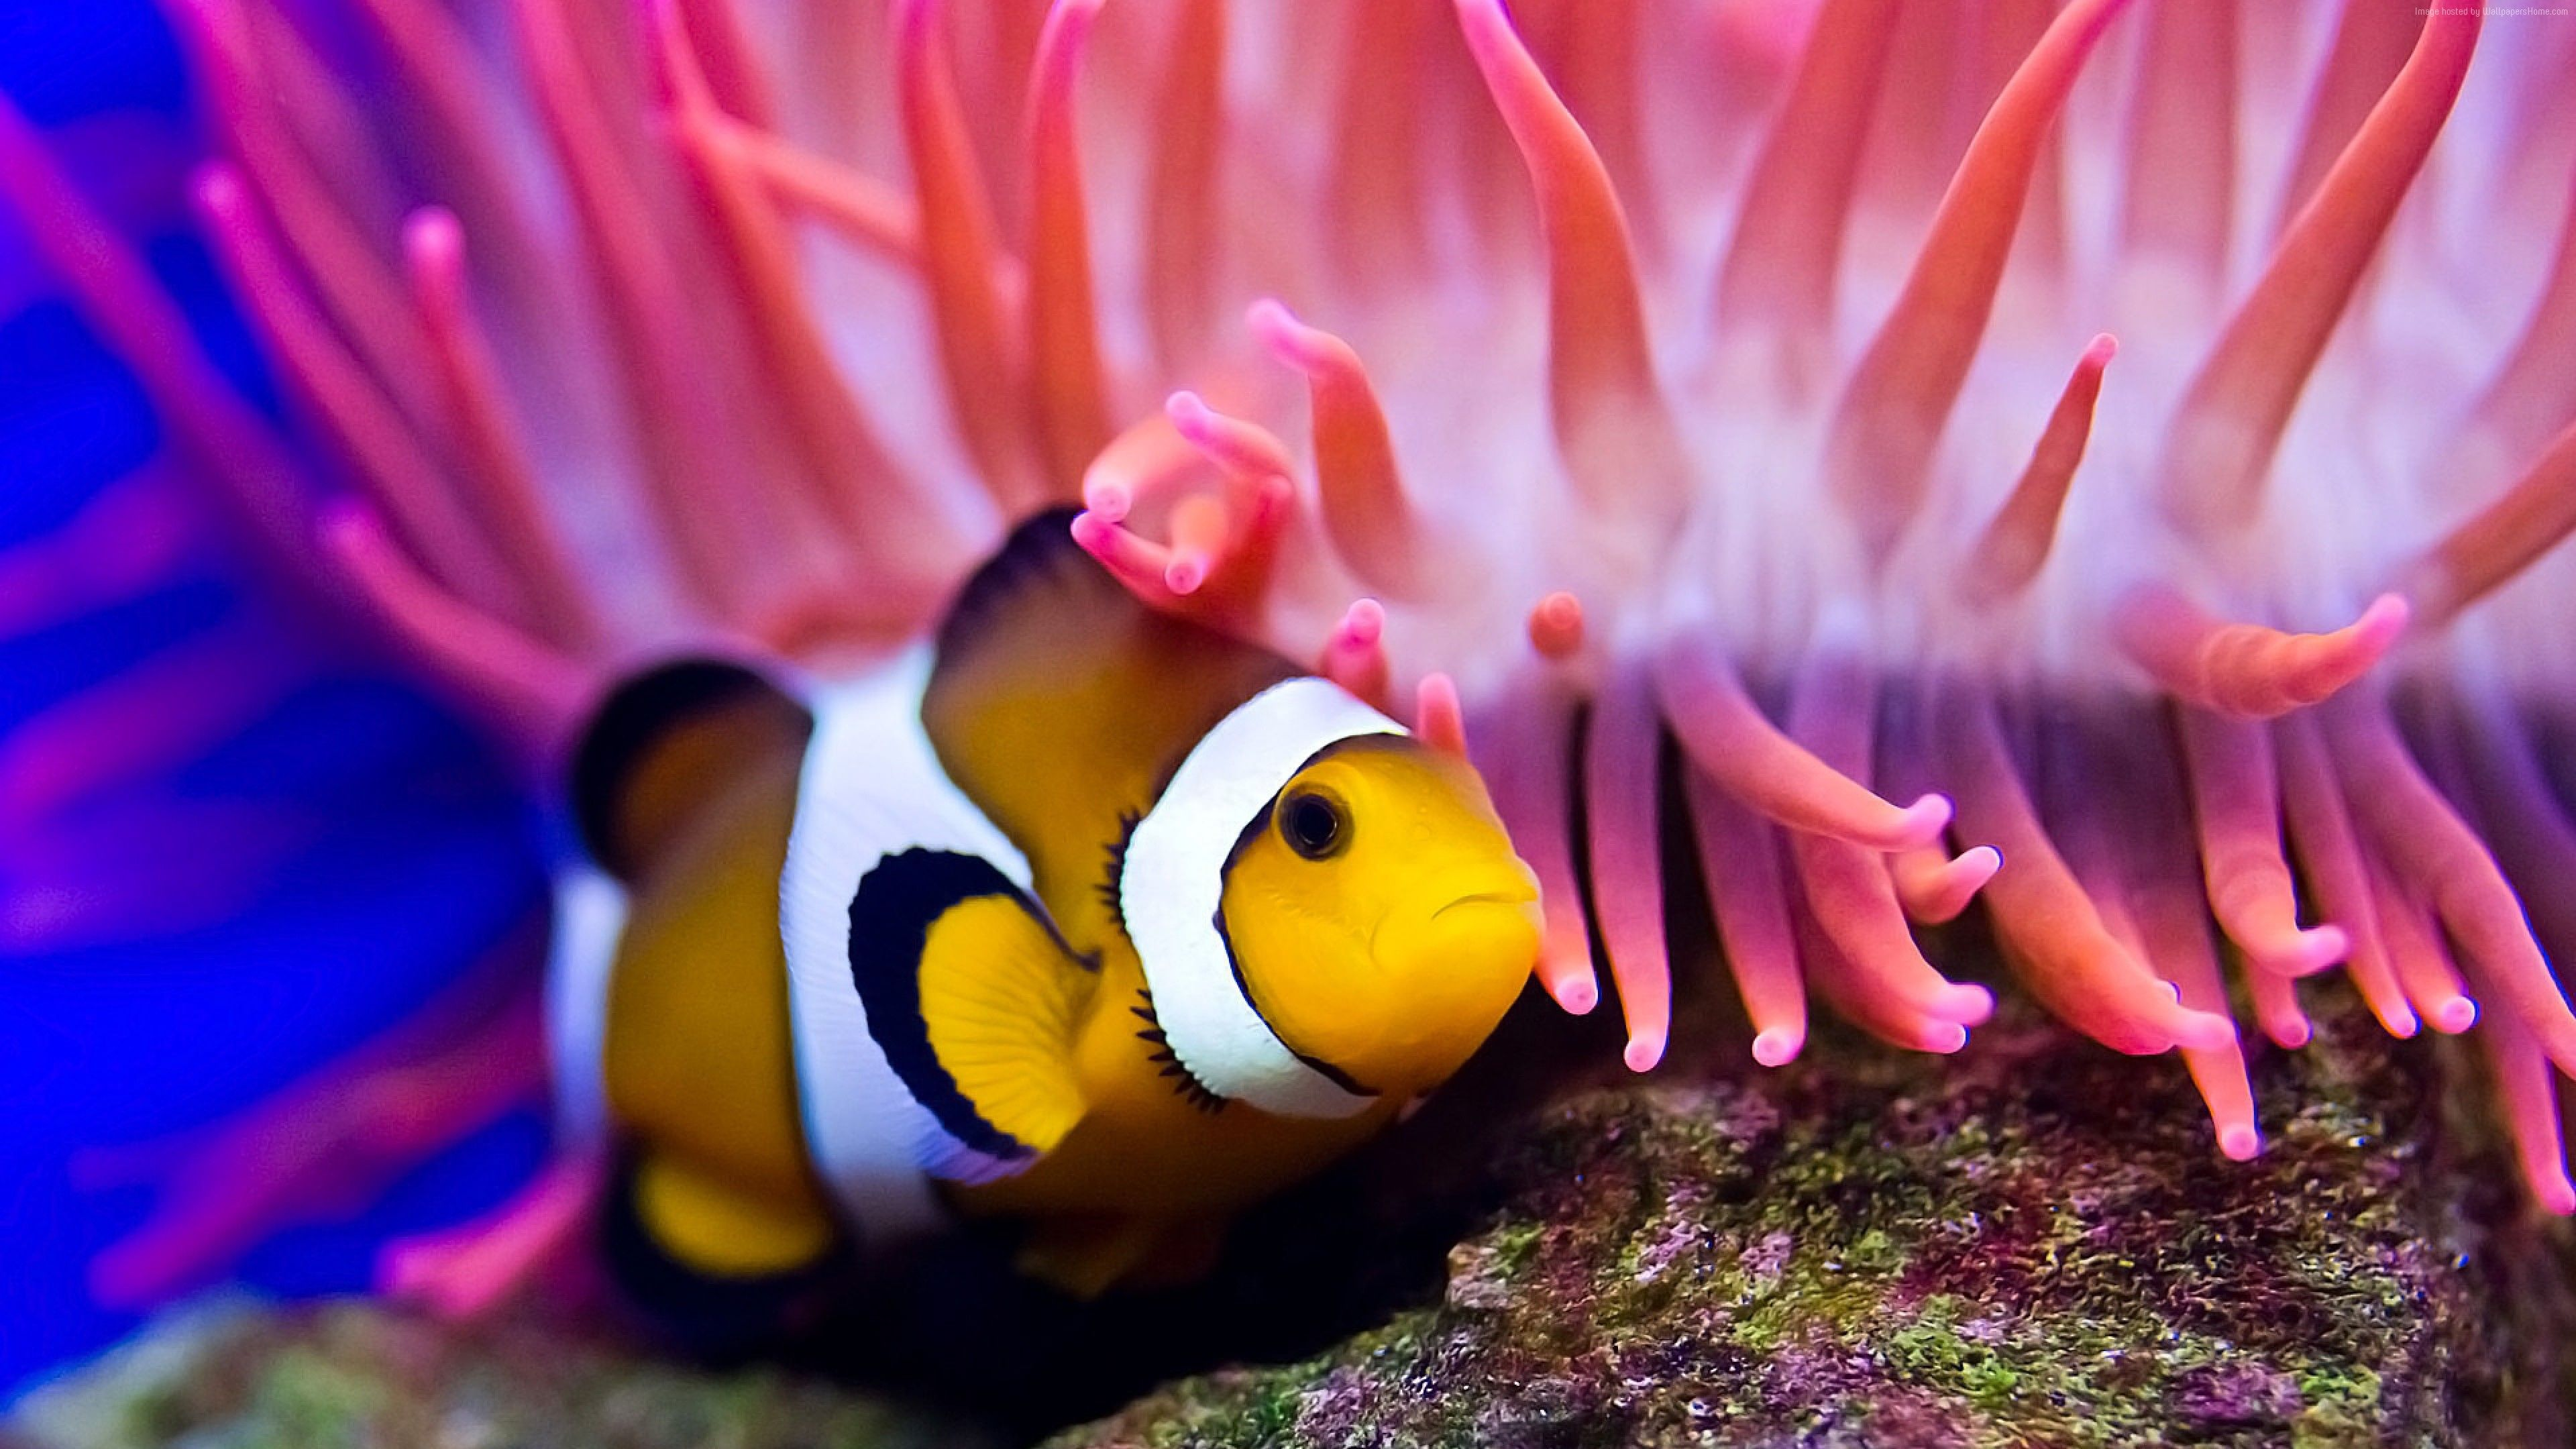 clownfish diving red sea coral worlds best diving sites 4k 4k